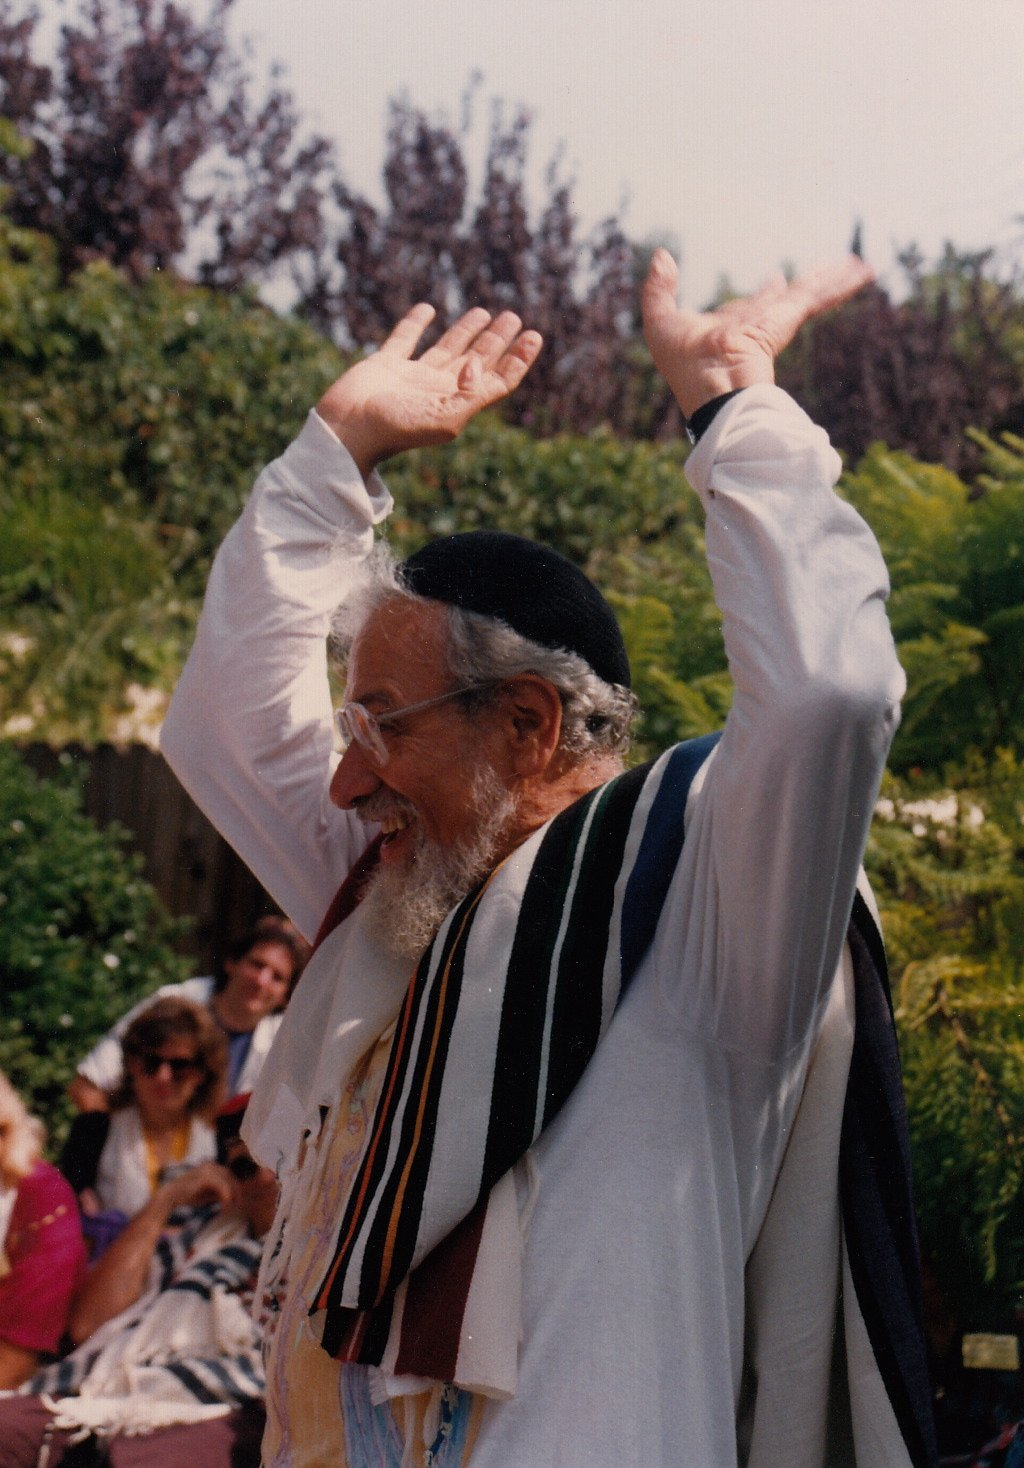 Rabbi Zalman Schachter-Shalomi with arms raised at a High Holidays service in Los Angeles, late 1990s.